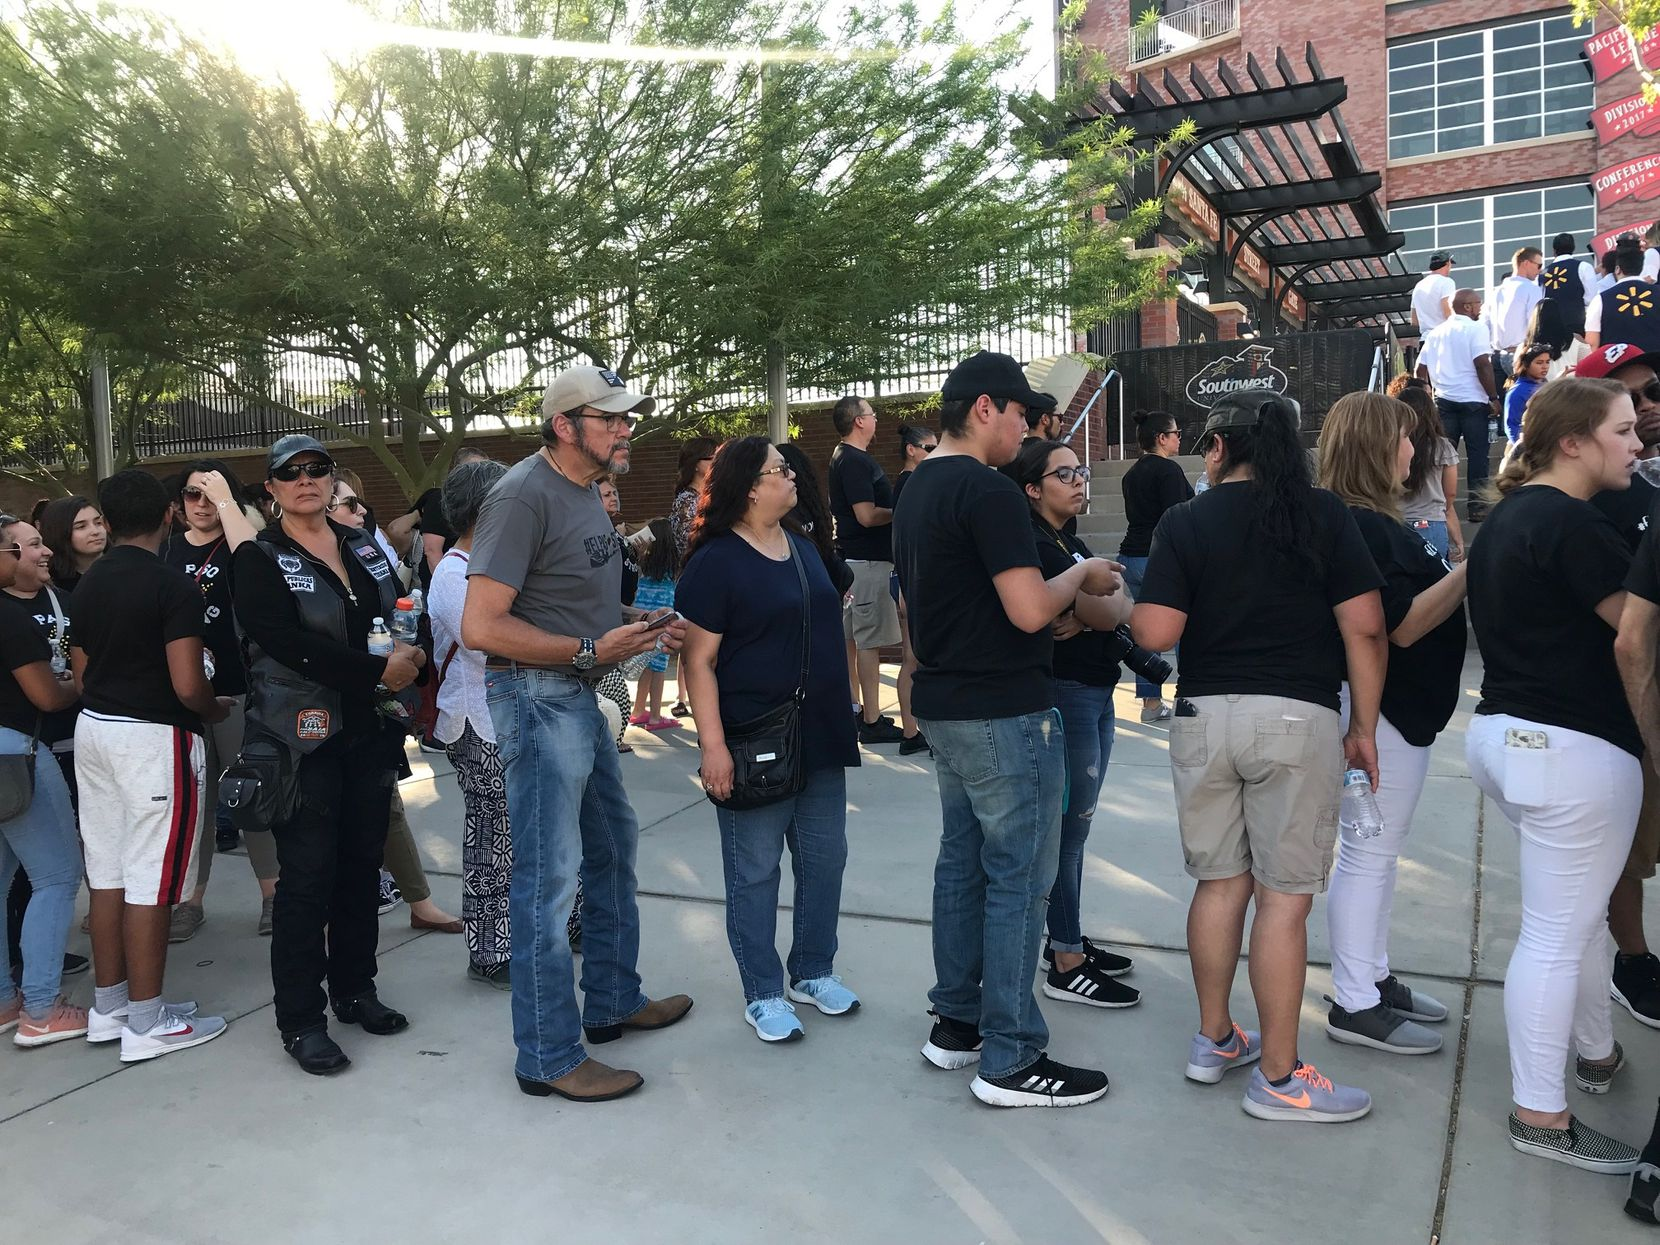 People wait to enter the ballpark shortly before the memorial got under way.